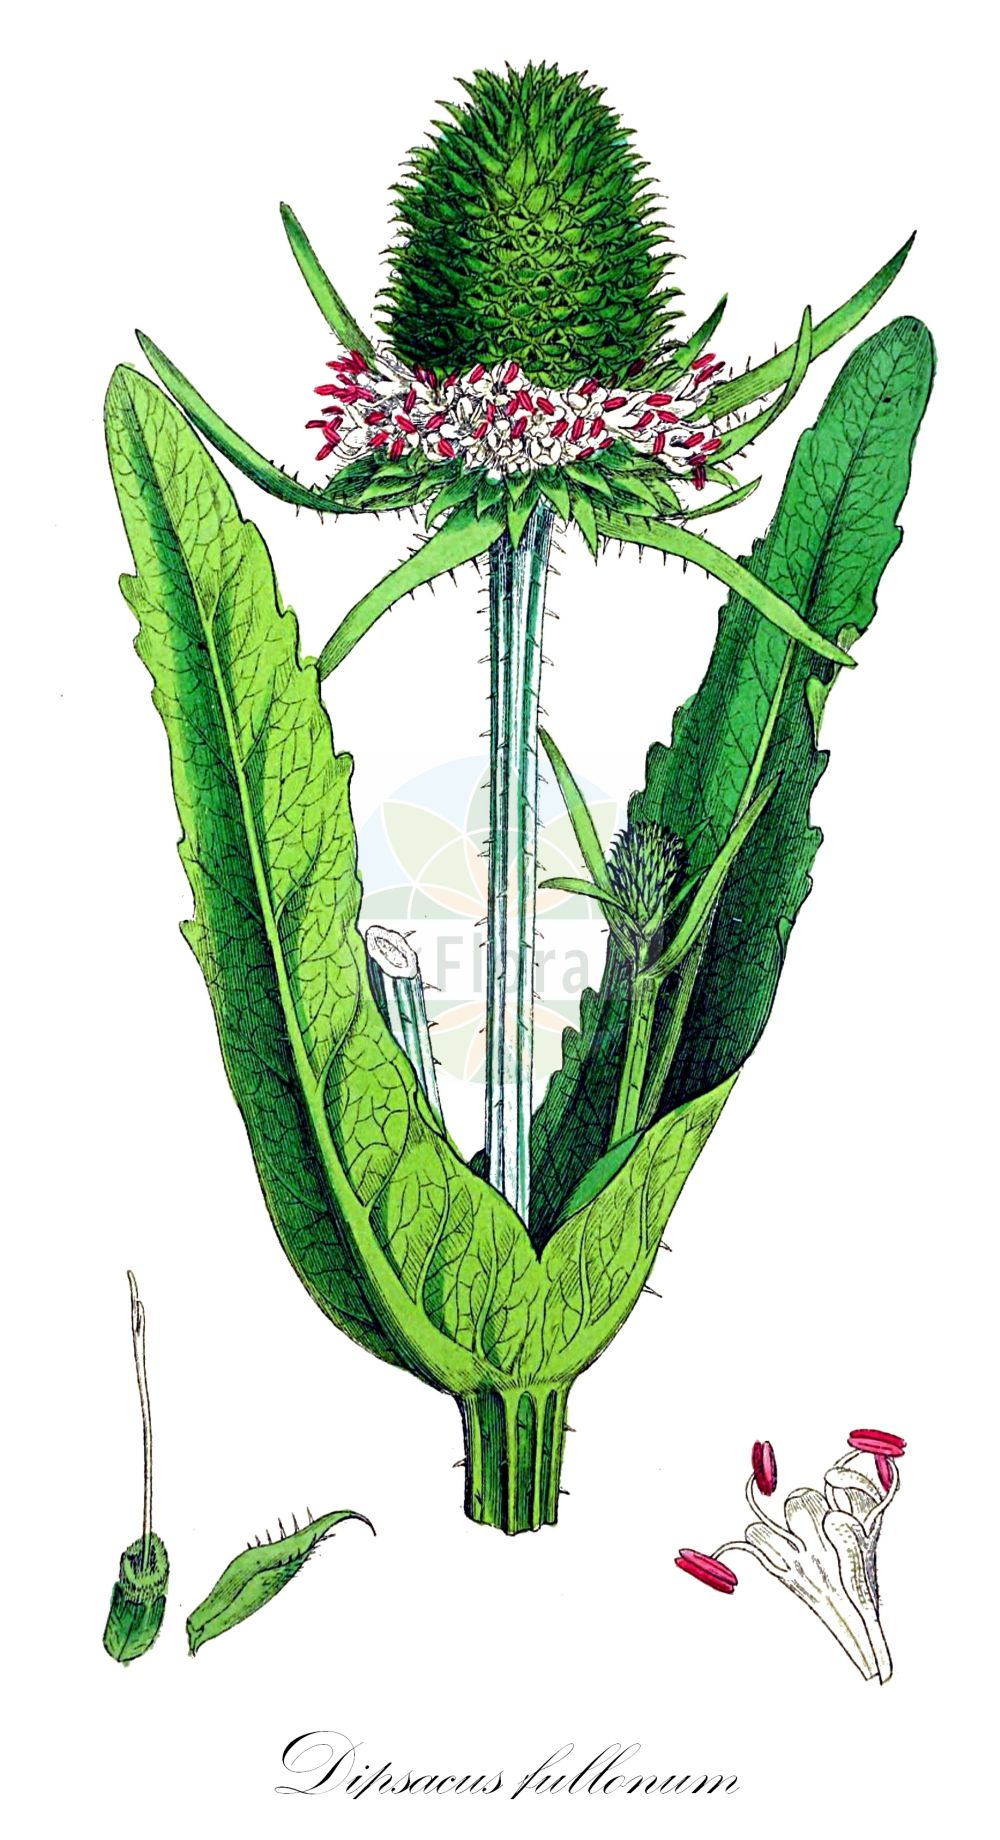 Historische Abbildung von Dipsacus fullonum (Wilde Karde - Wild Teasel). Das Bild zeigt Blatt, Bluete, Frucht und Same. ---- Historical Drawing of Dipsacus fullonum (Wilde Karde - Wild Teasel).The image is showing leaf, flower, fruit and seed.(Dipsacus fullonum,Wilde Karde,Wild Teasel,Dipsacus sylvestris,Common Teasel,Fuller's Teasel,Teasel,Dipsacus,Karde,Teasel,Caprifoliaceae,Geissblattgewaechse,Honeysuckle family,Blatt,Bluete,Frucht,Same,leaf,flower,fruit,seed,Sowerby (1790-1813))